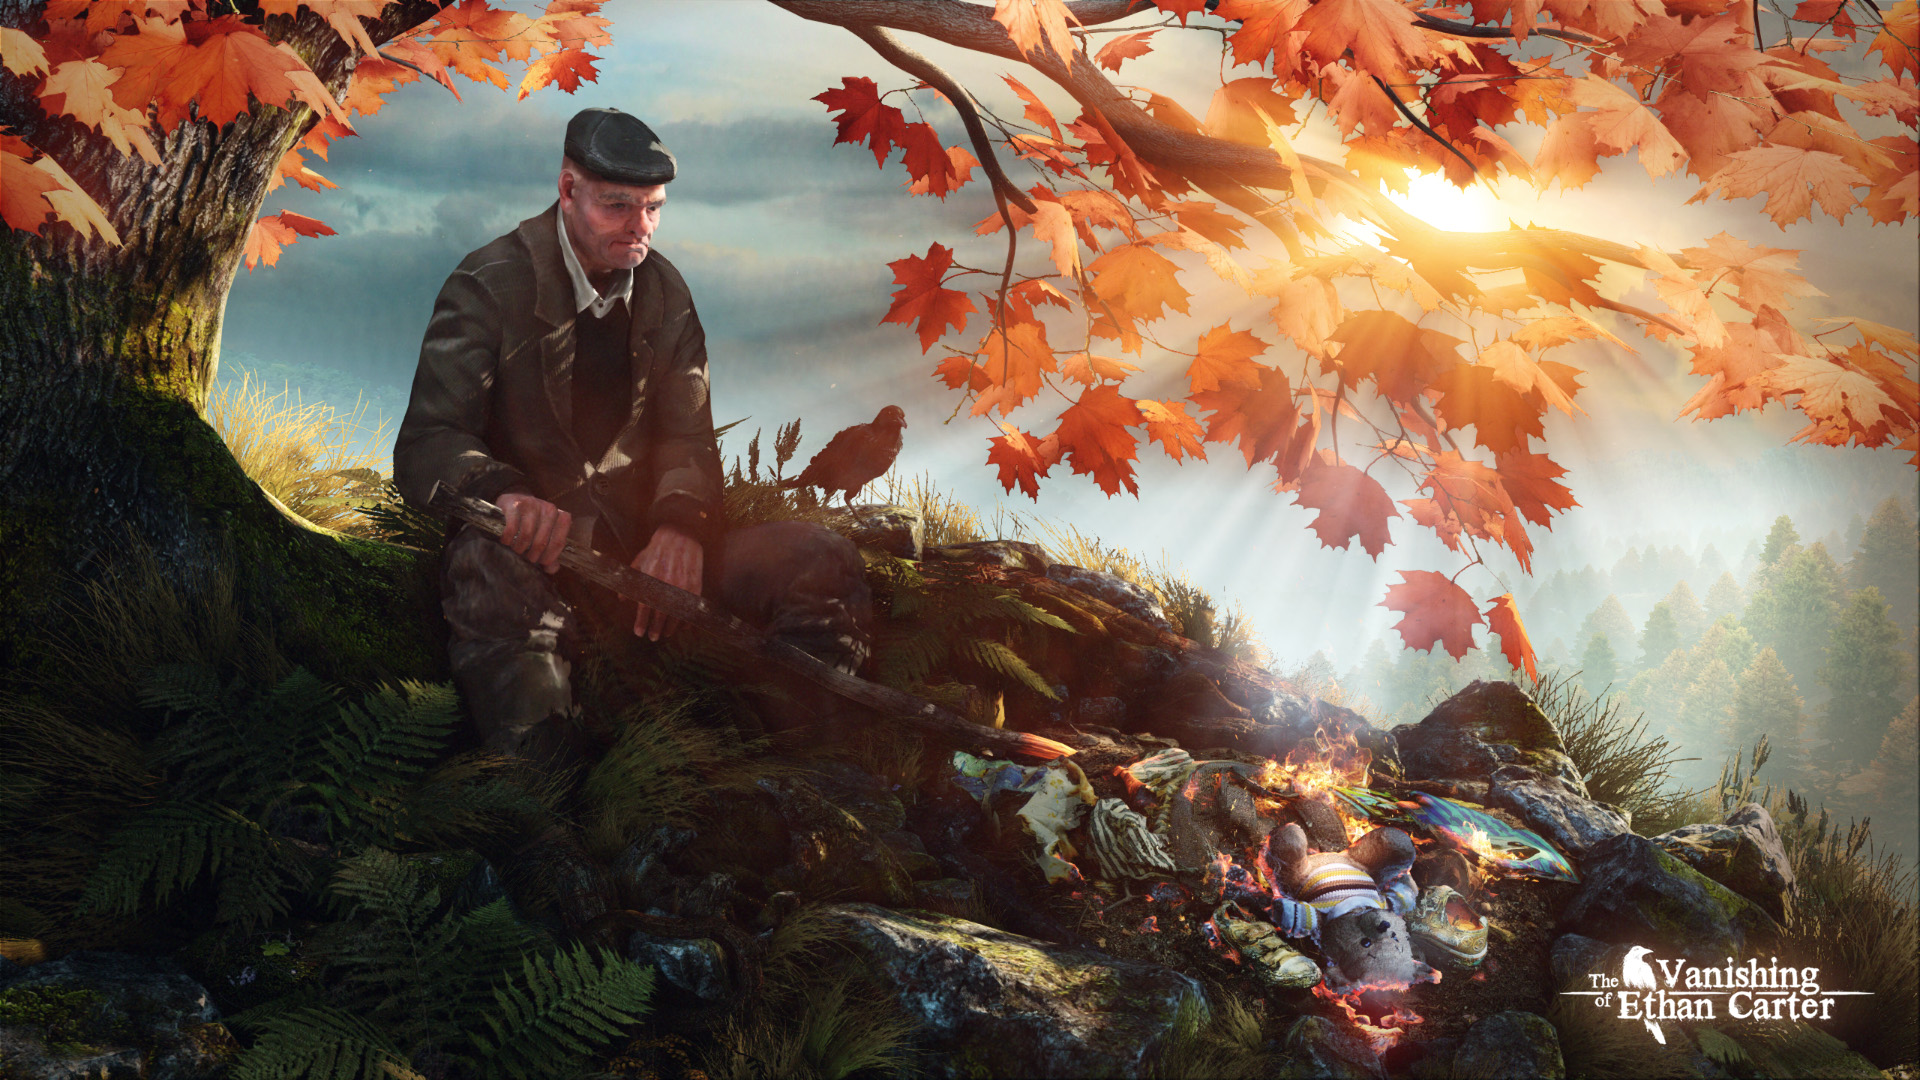 The_Vanishing_of_Ethan_Carter_16x9_1920x1080